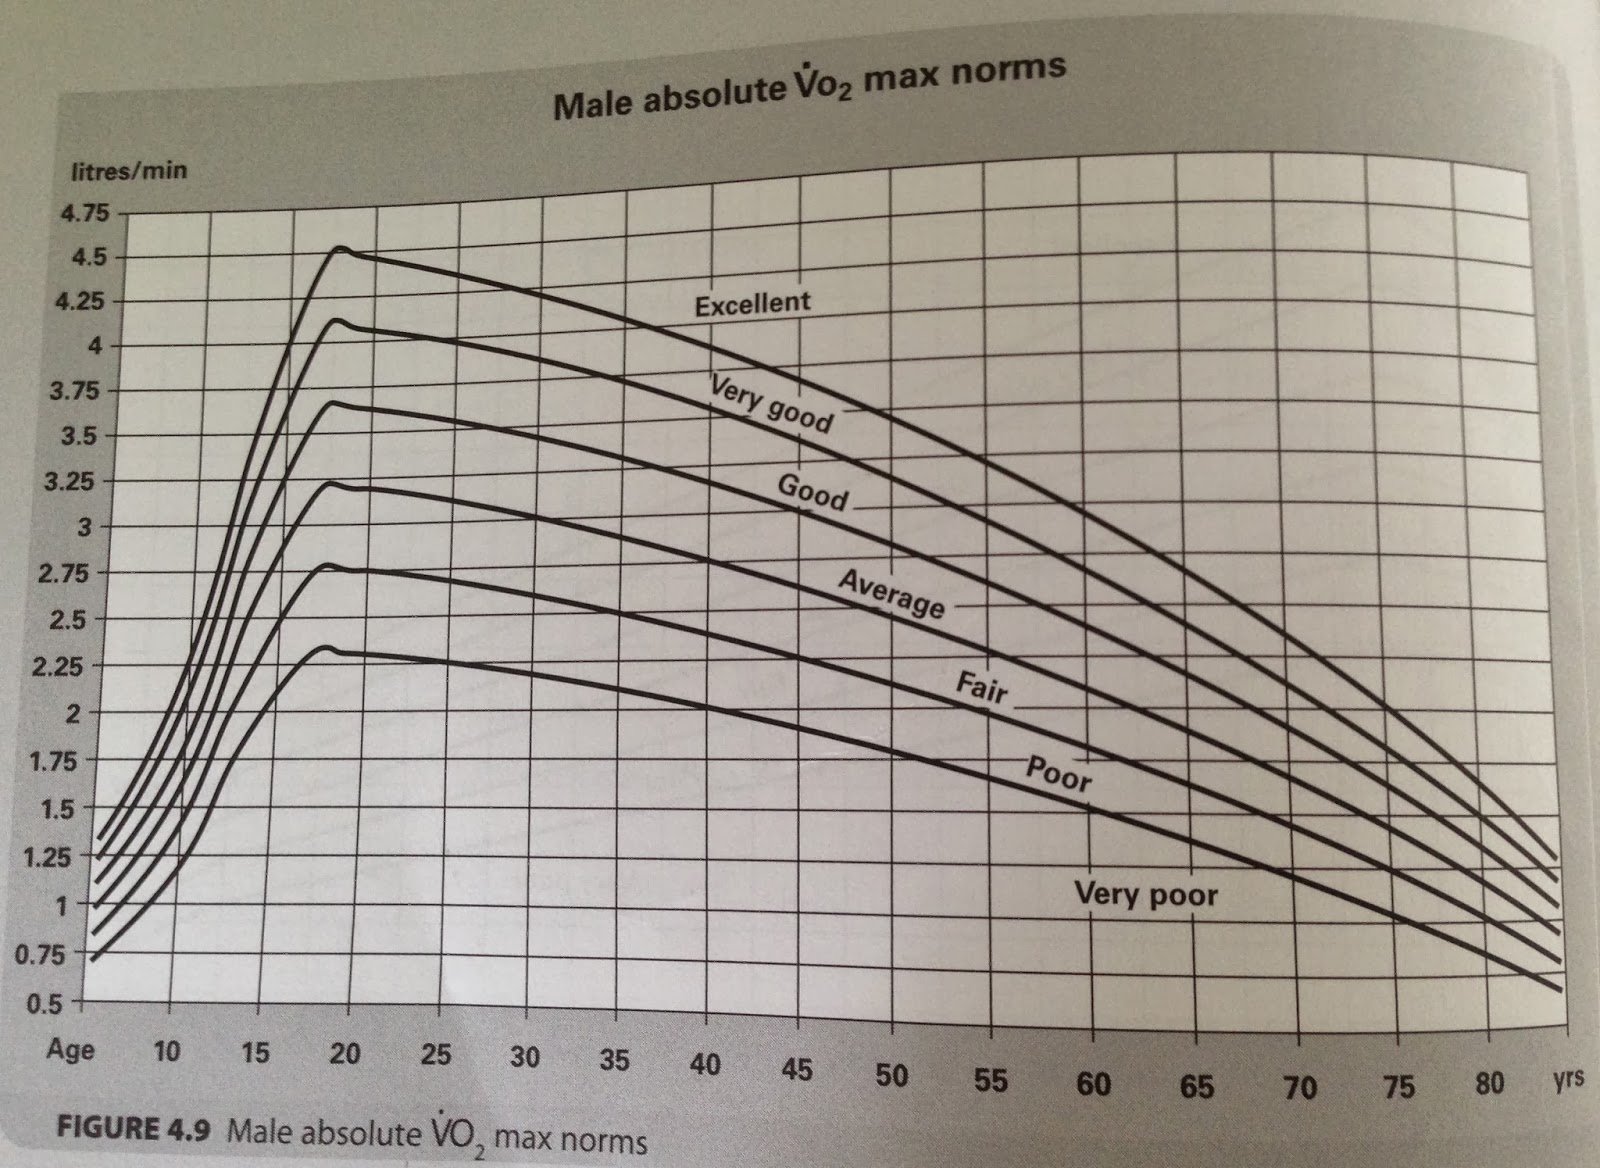 vo2 max Define vo2 max: the maximum amount of oxygen the body can utilize during a specified period of usually intense exercise.